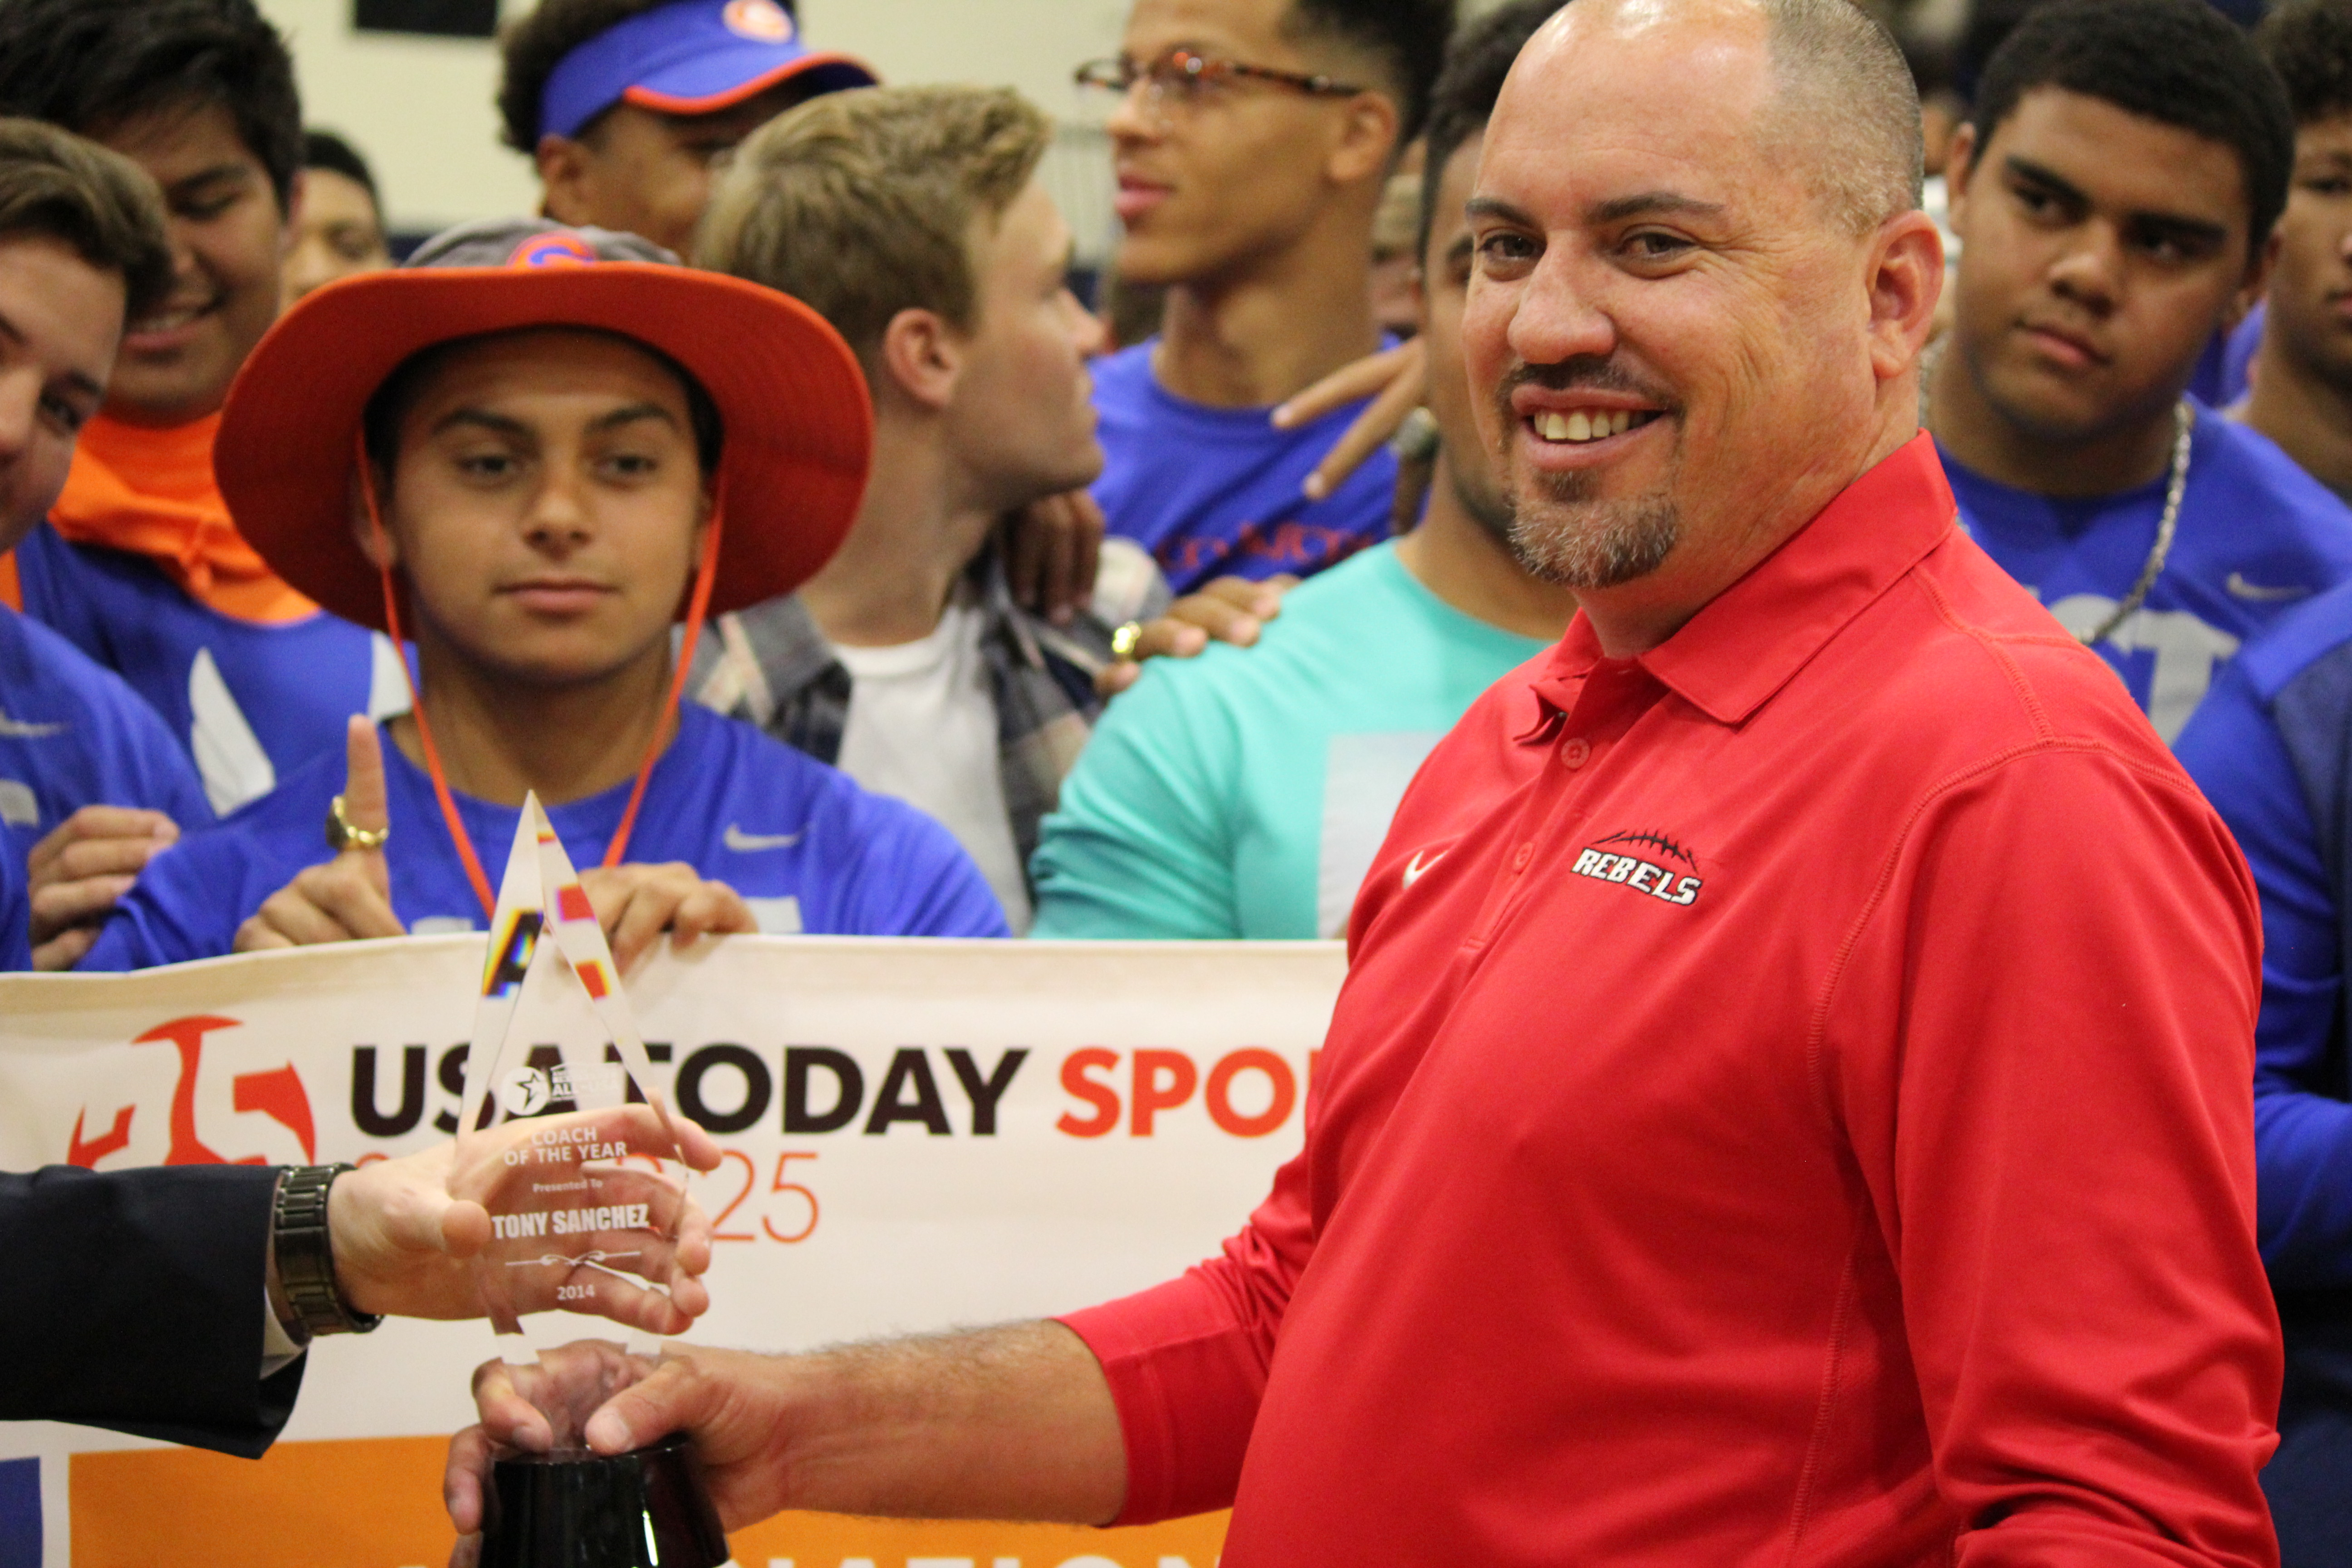 Tony Sanchez accepts the trophy as the American Family Insurance ALL-USA Coach of the Year (Photo: UNLV)